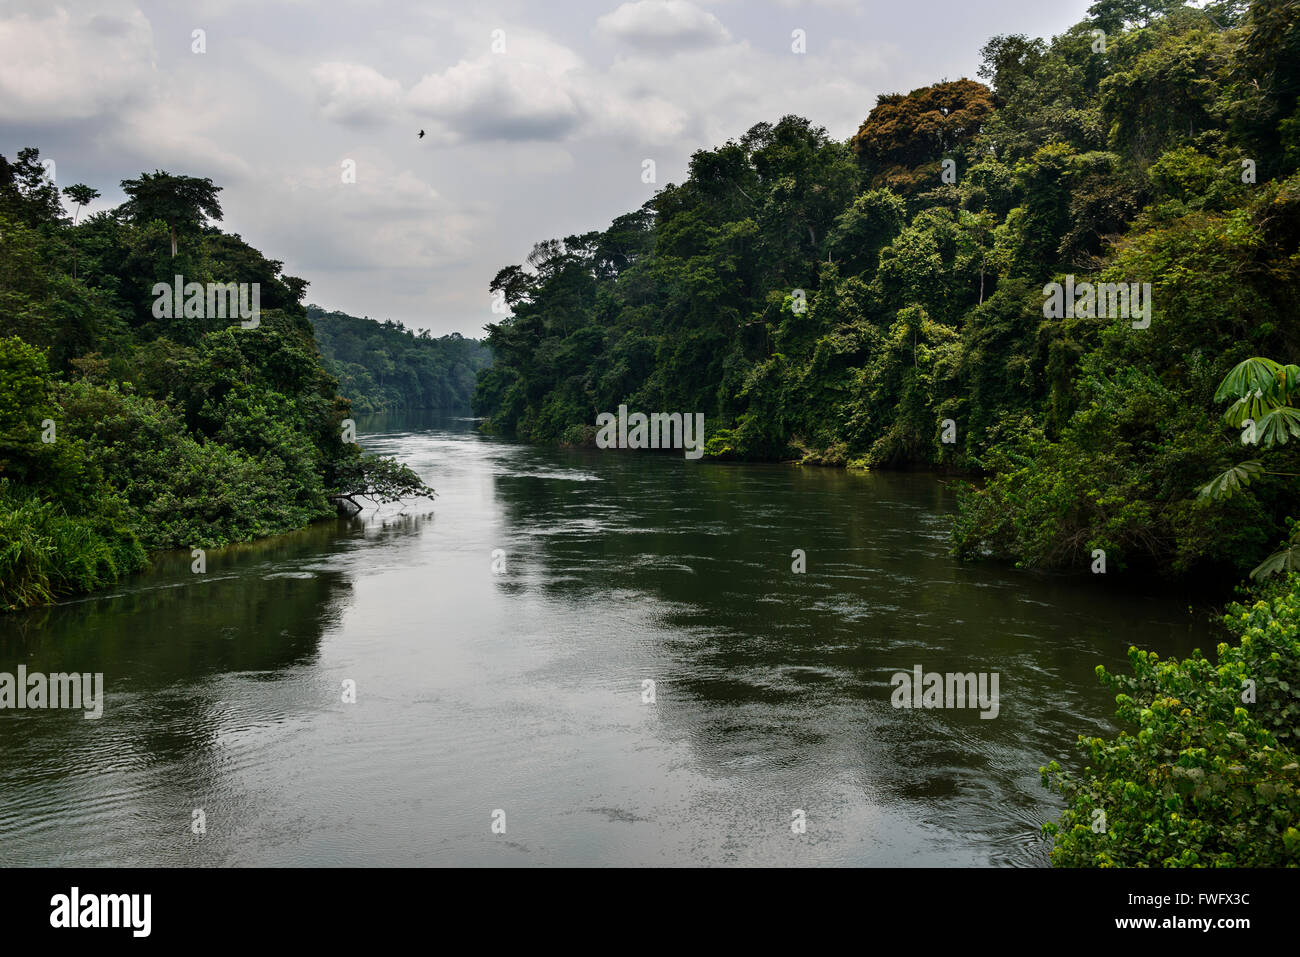 The rivers of the rainforest, Gabon, Central Africa - Stock Image